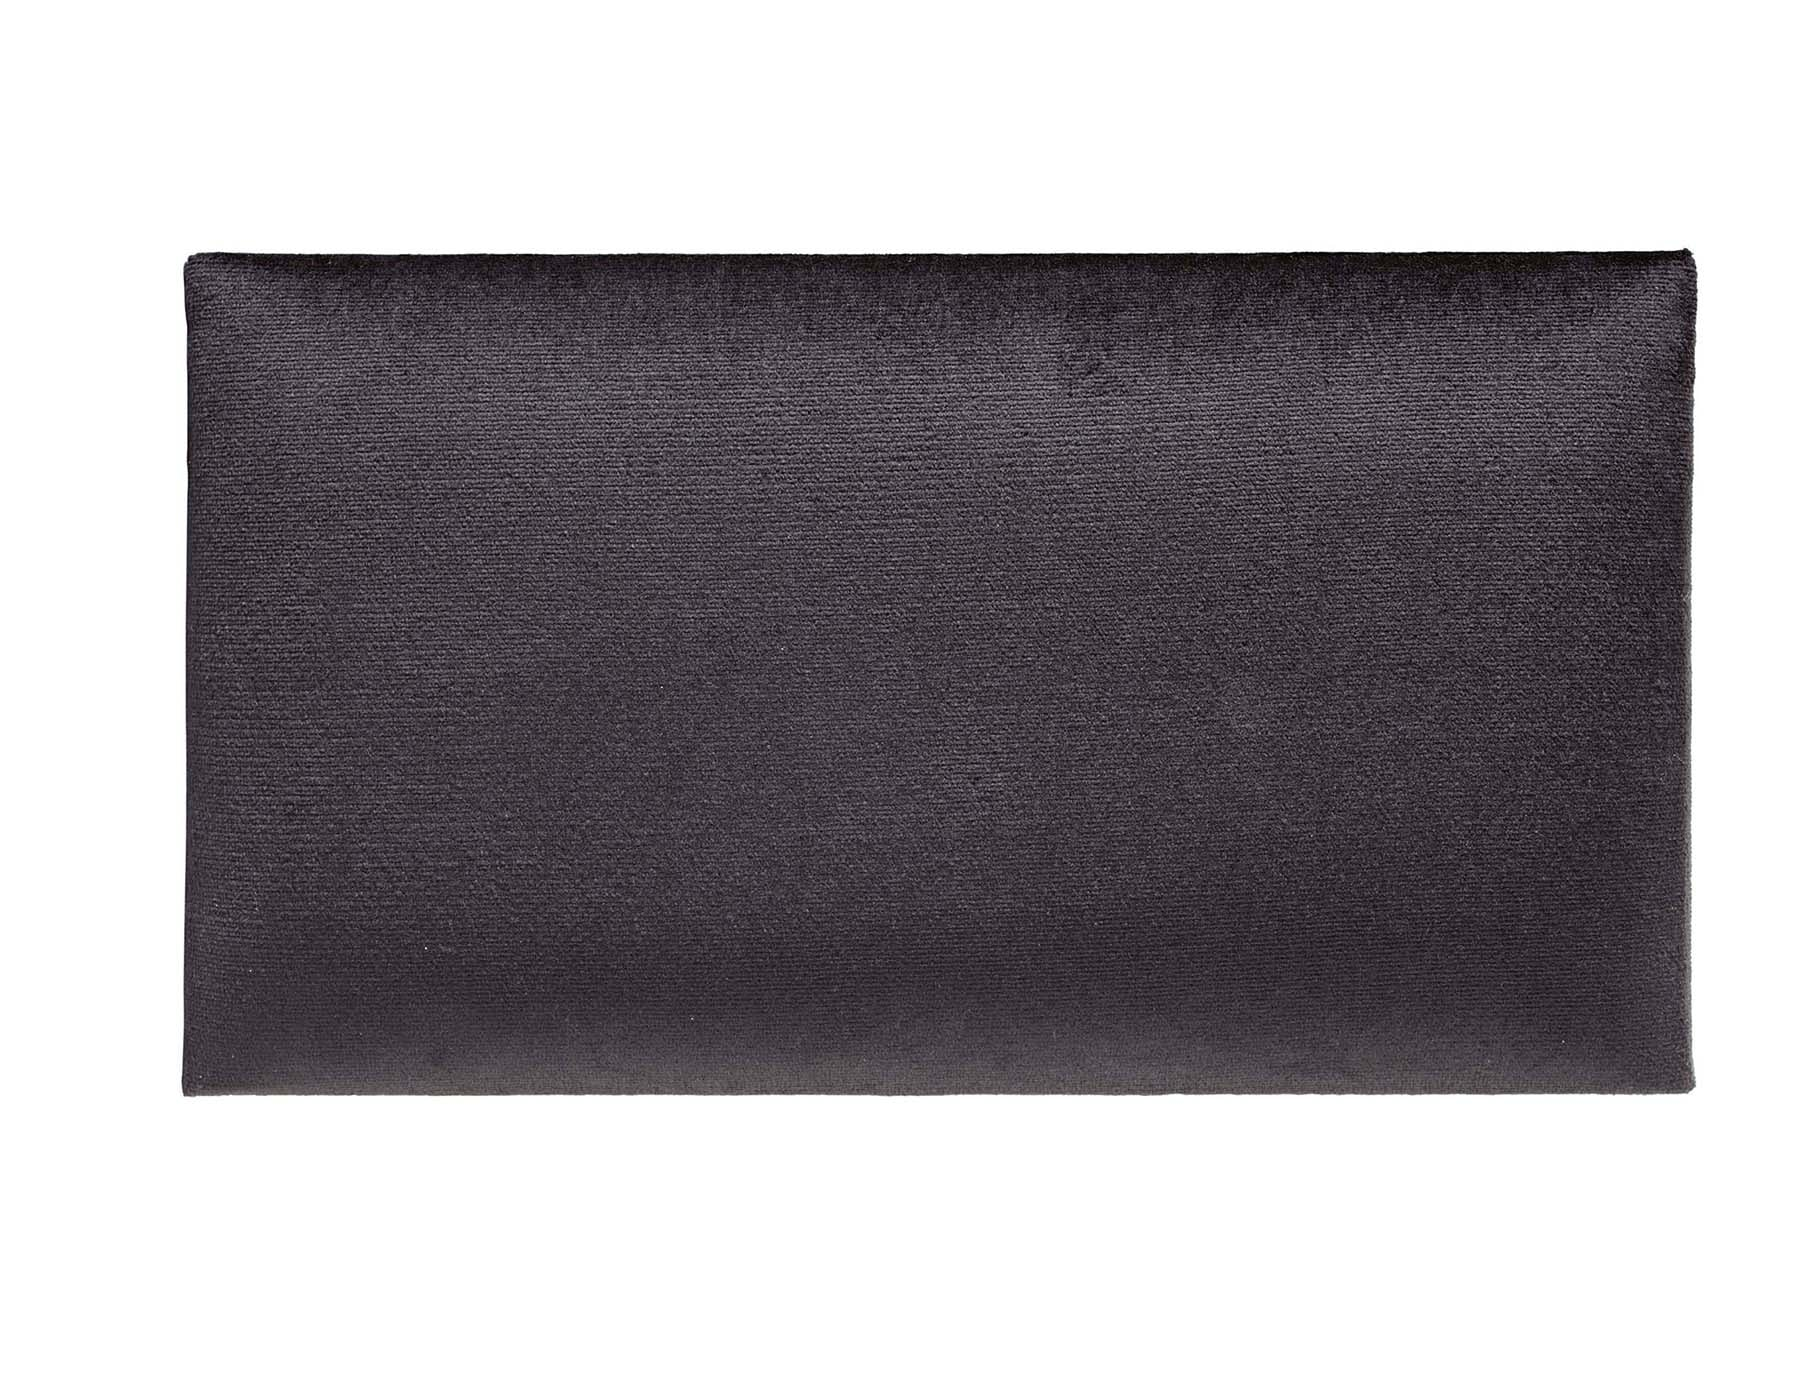 KM1380 - Seat cushion - velvet